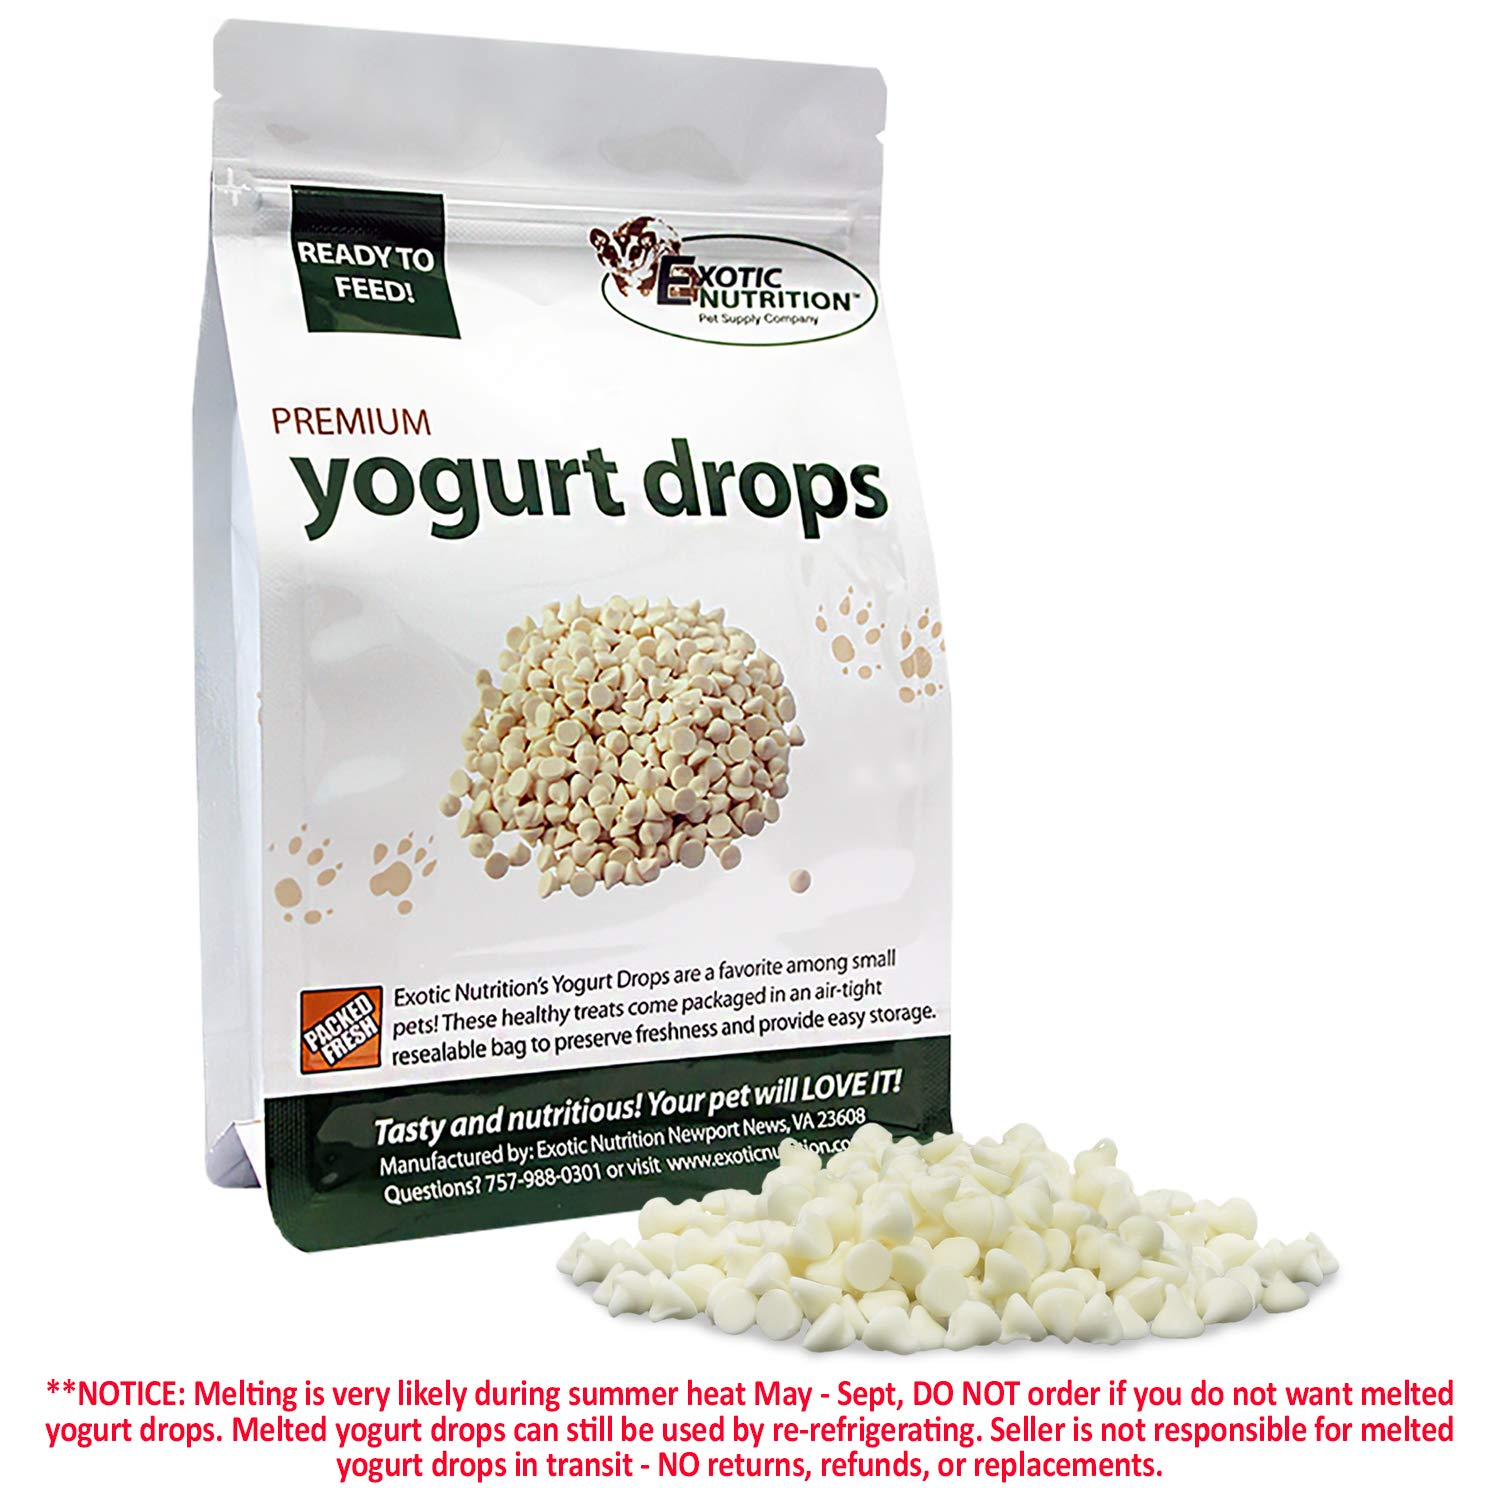 Yogurt Drops (12 oz.) - All Natural Healthy Yogurt Treat - For Sugar Gliders, Prairie Dogs, Monkeys, Squirrels, Guinea Pigs, Rabbits, Chinchillas, Rats, Marmosets, Degus & Other Small Pets by Exotic Nutrition